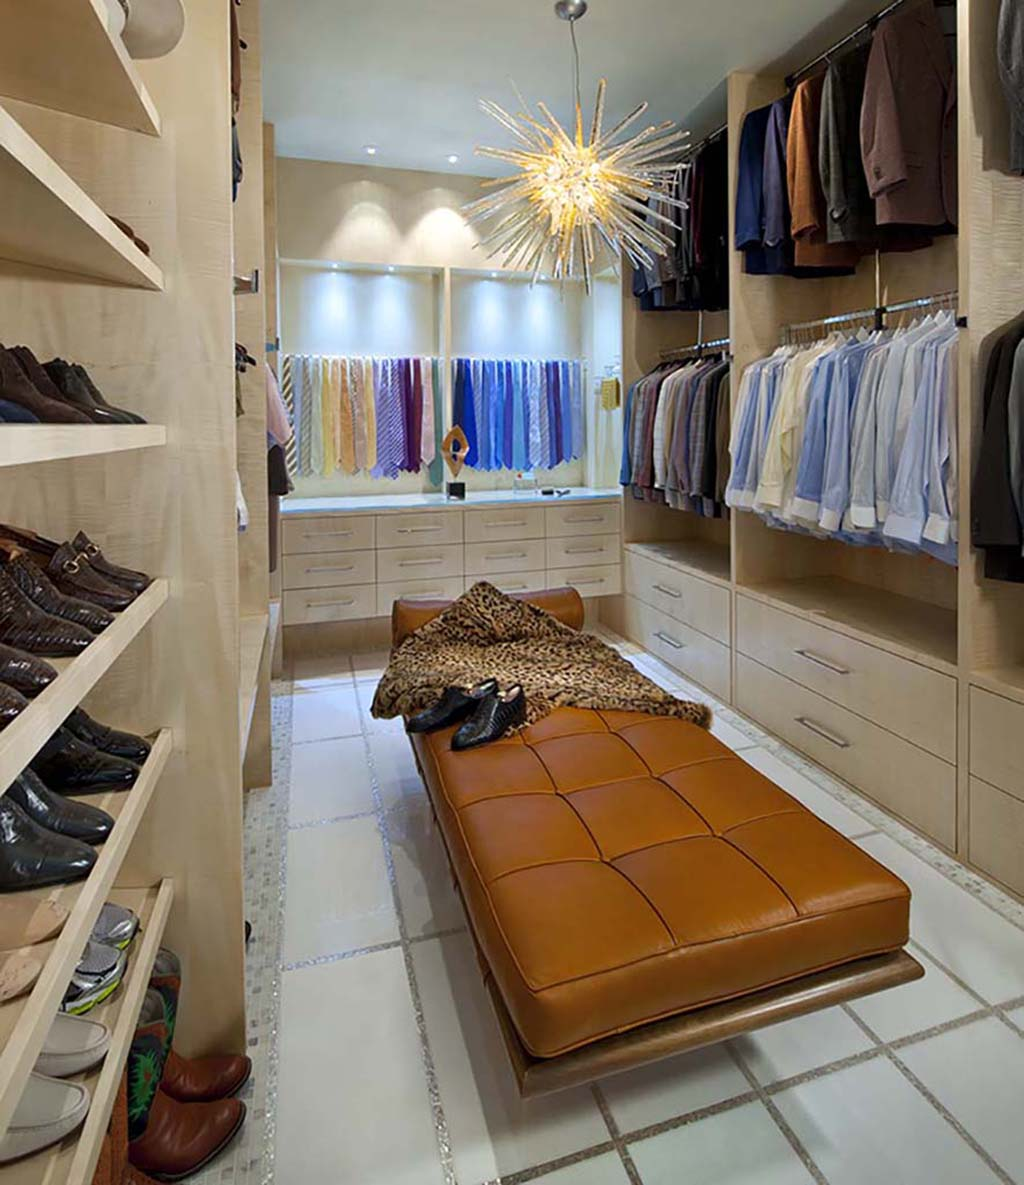 ASID LEGACY OF DESIGN 2015 SECOND PLACE UNIQUE SPACE CONTEMPORARY MASTER CLOSET HIS MARY ANNE SMILEY INTERIORS